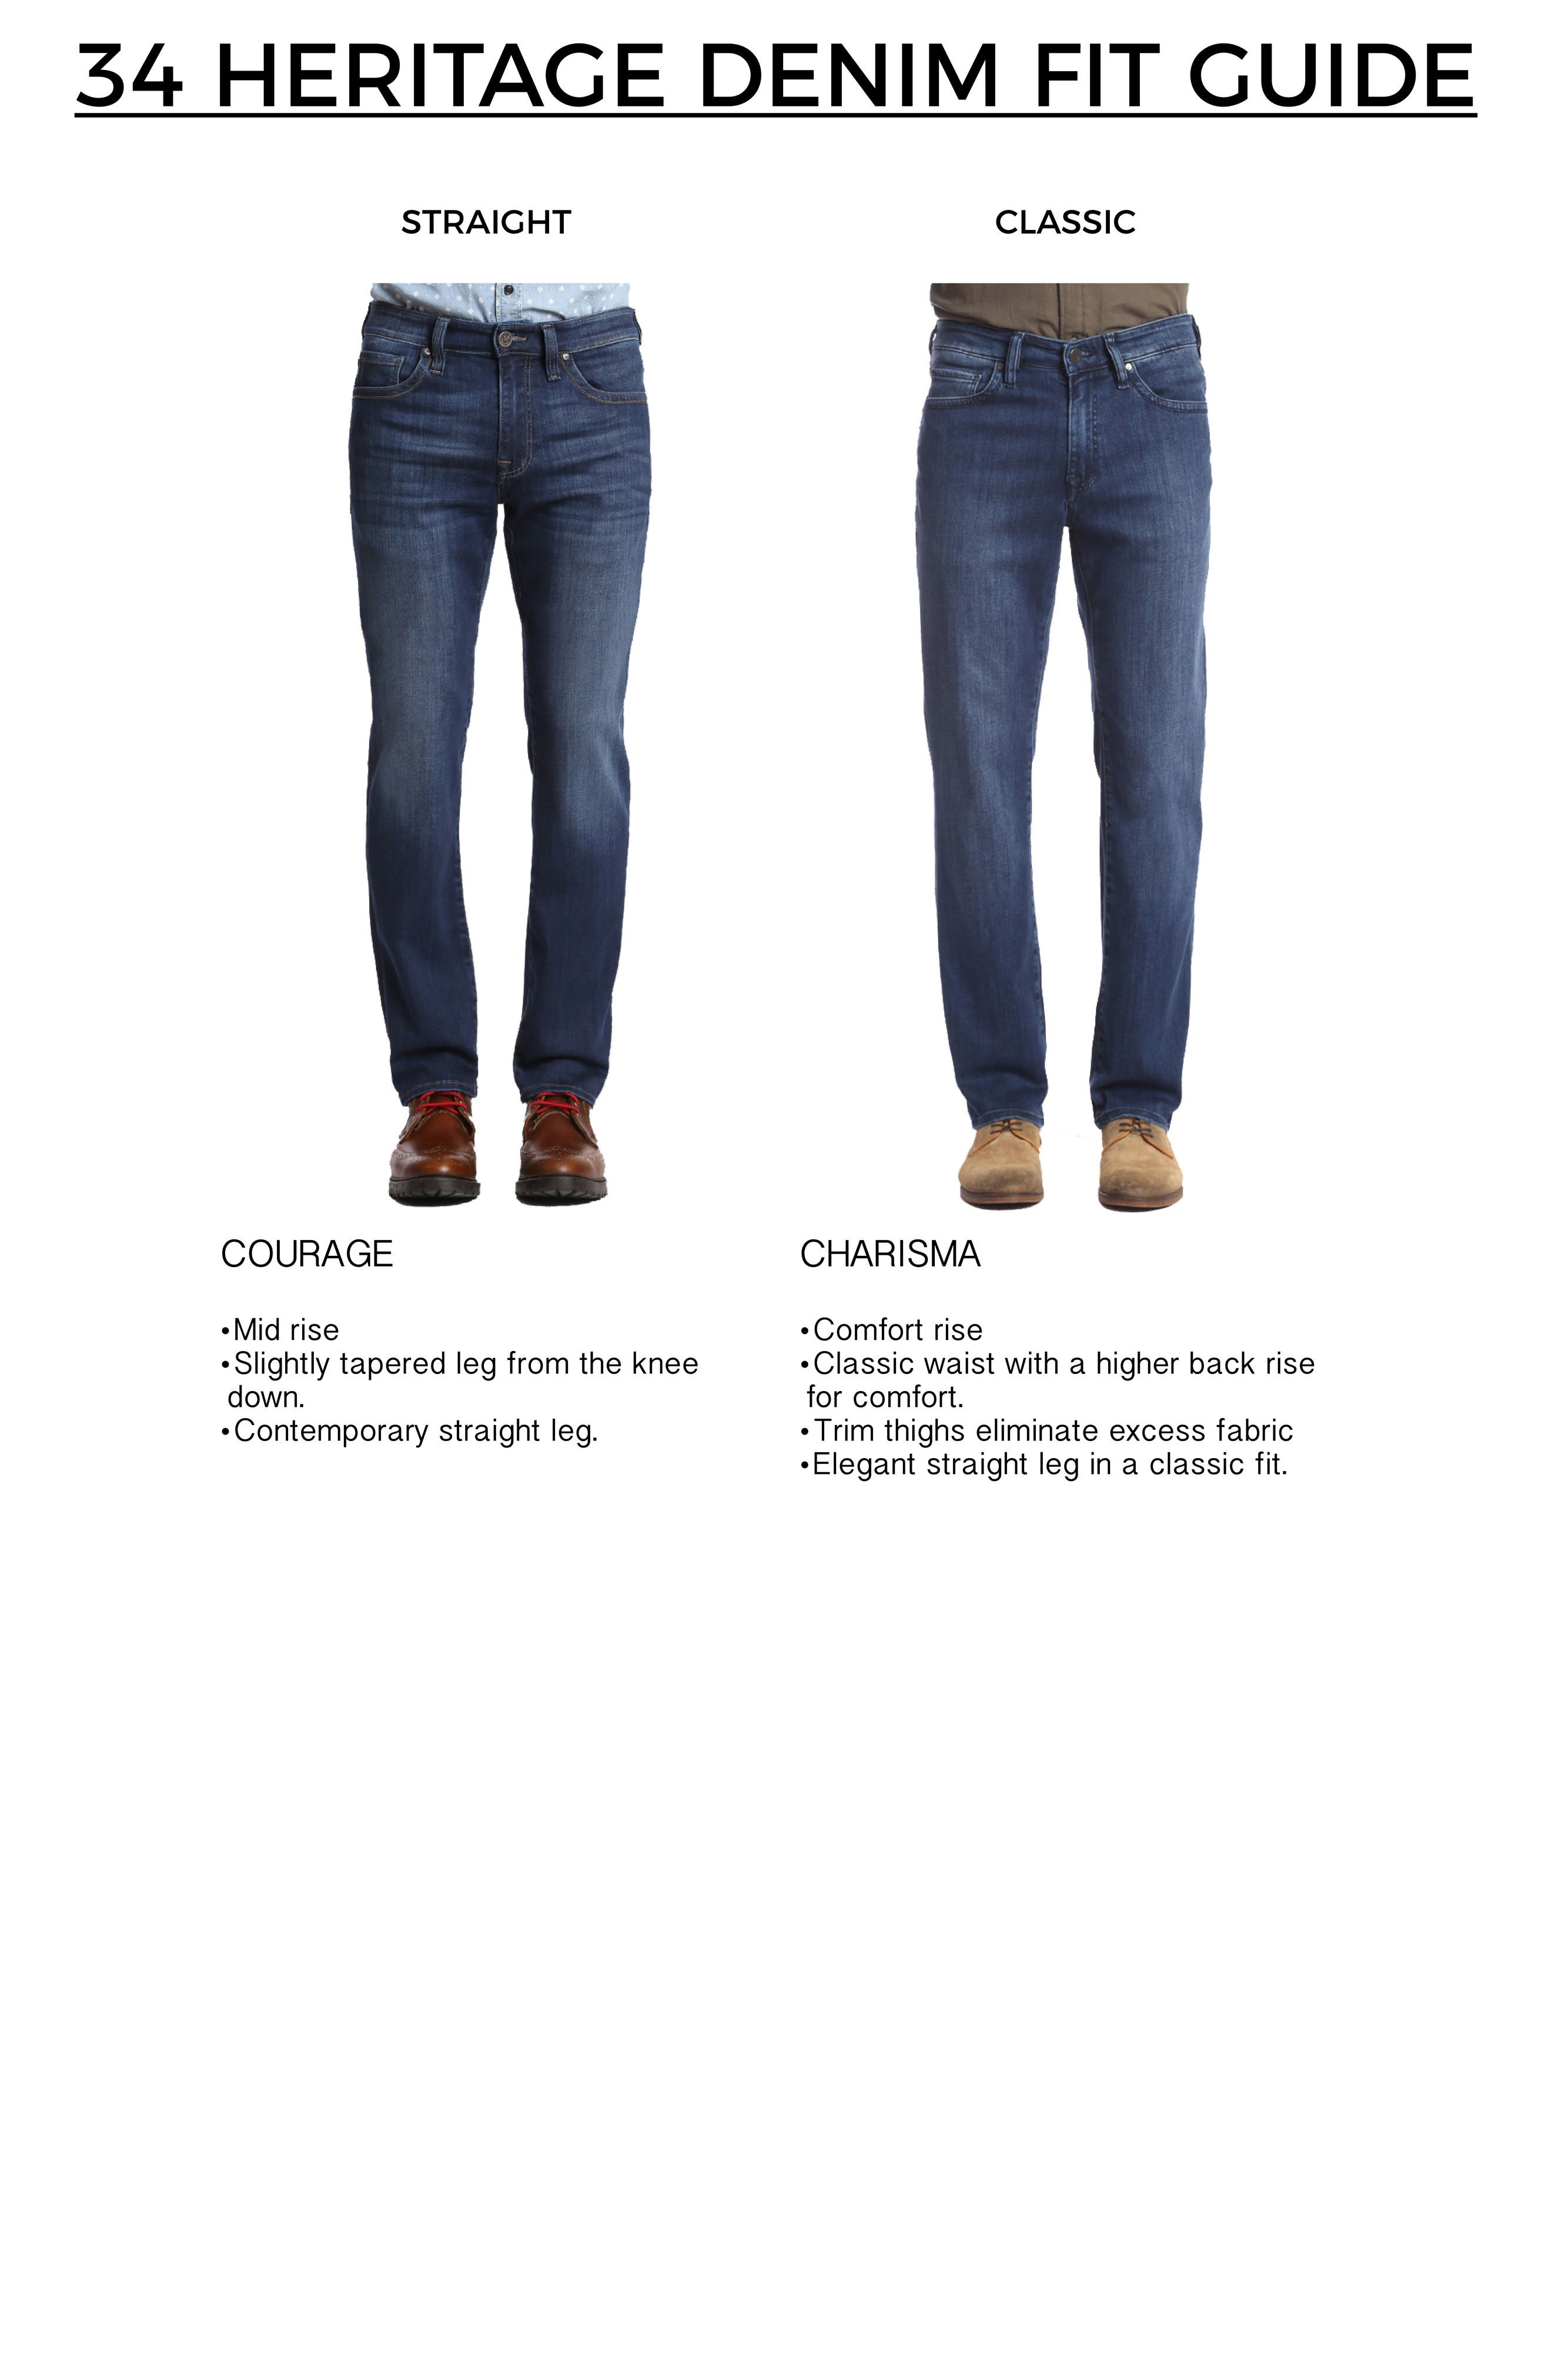 'Charisma' Classic Relaxed Fit Jeans,                             Alternate thumbnail 5, color,                             Midnight Cashmere